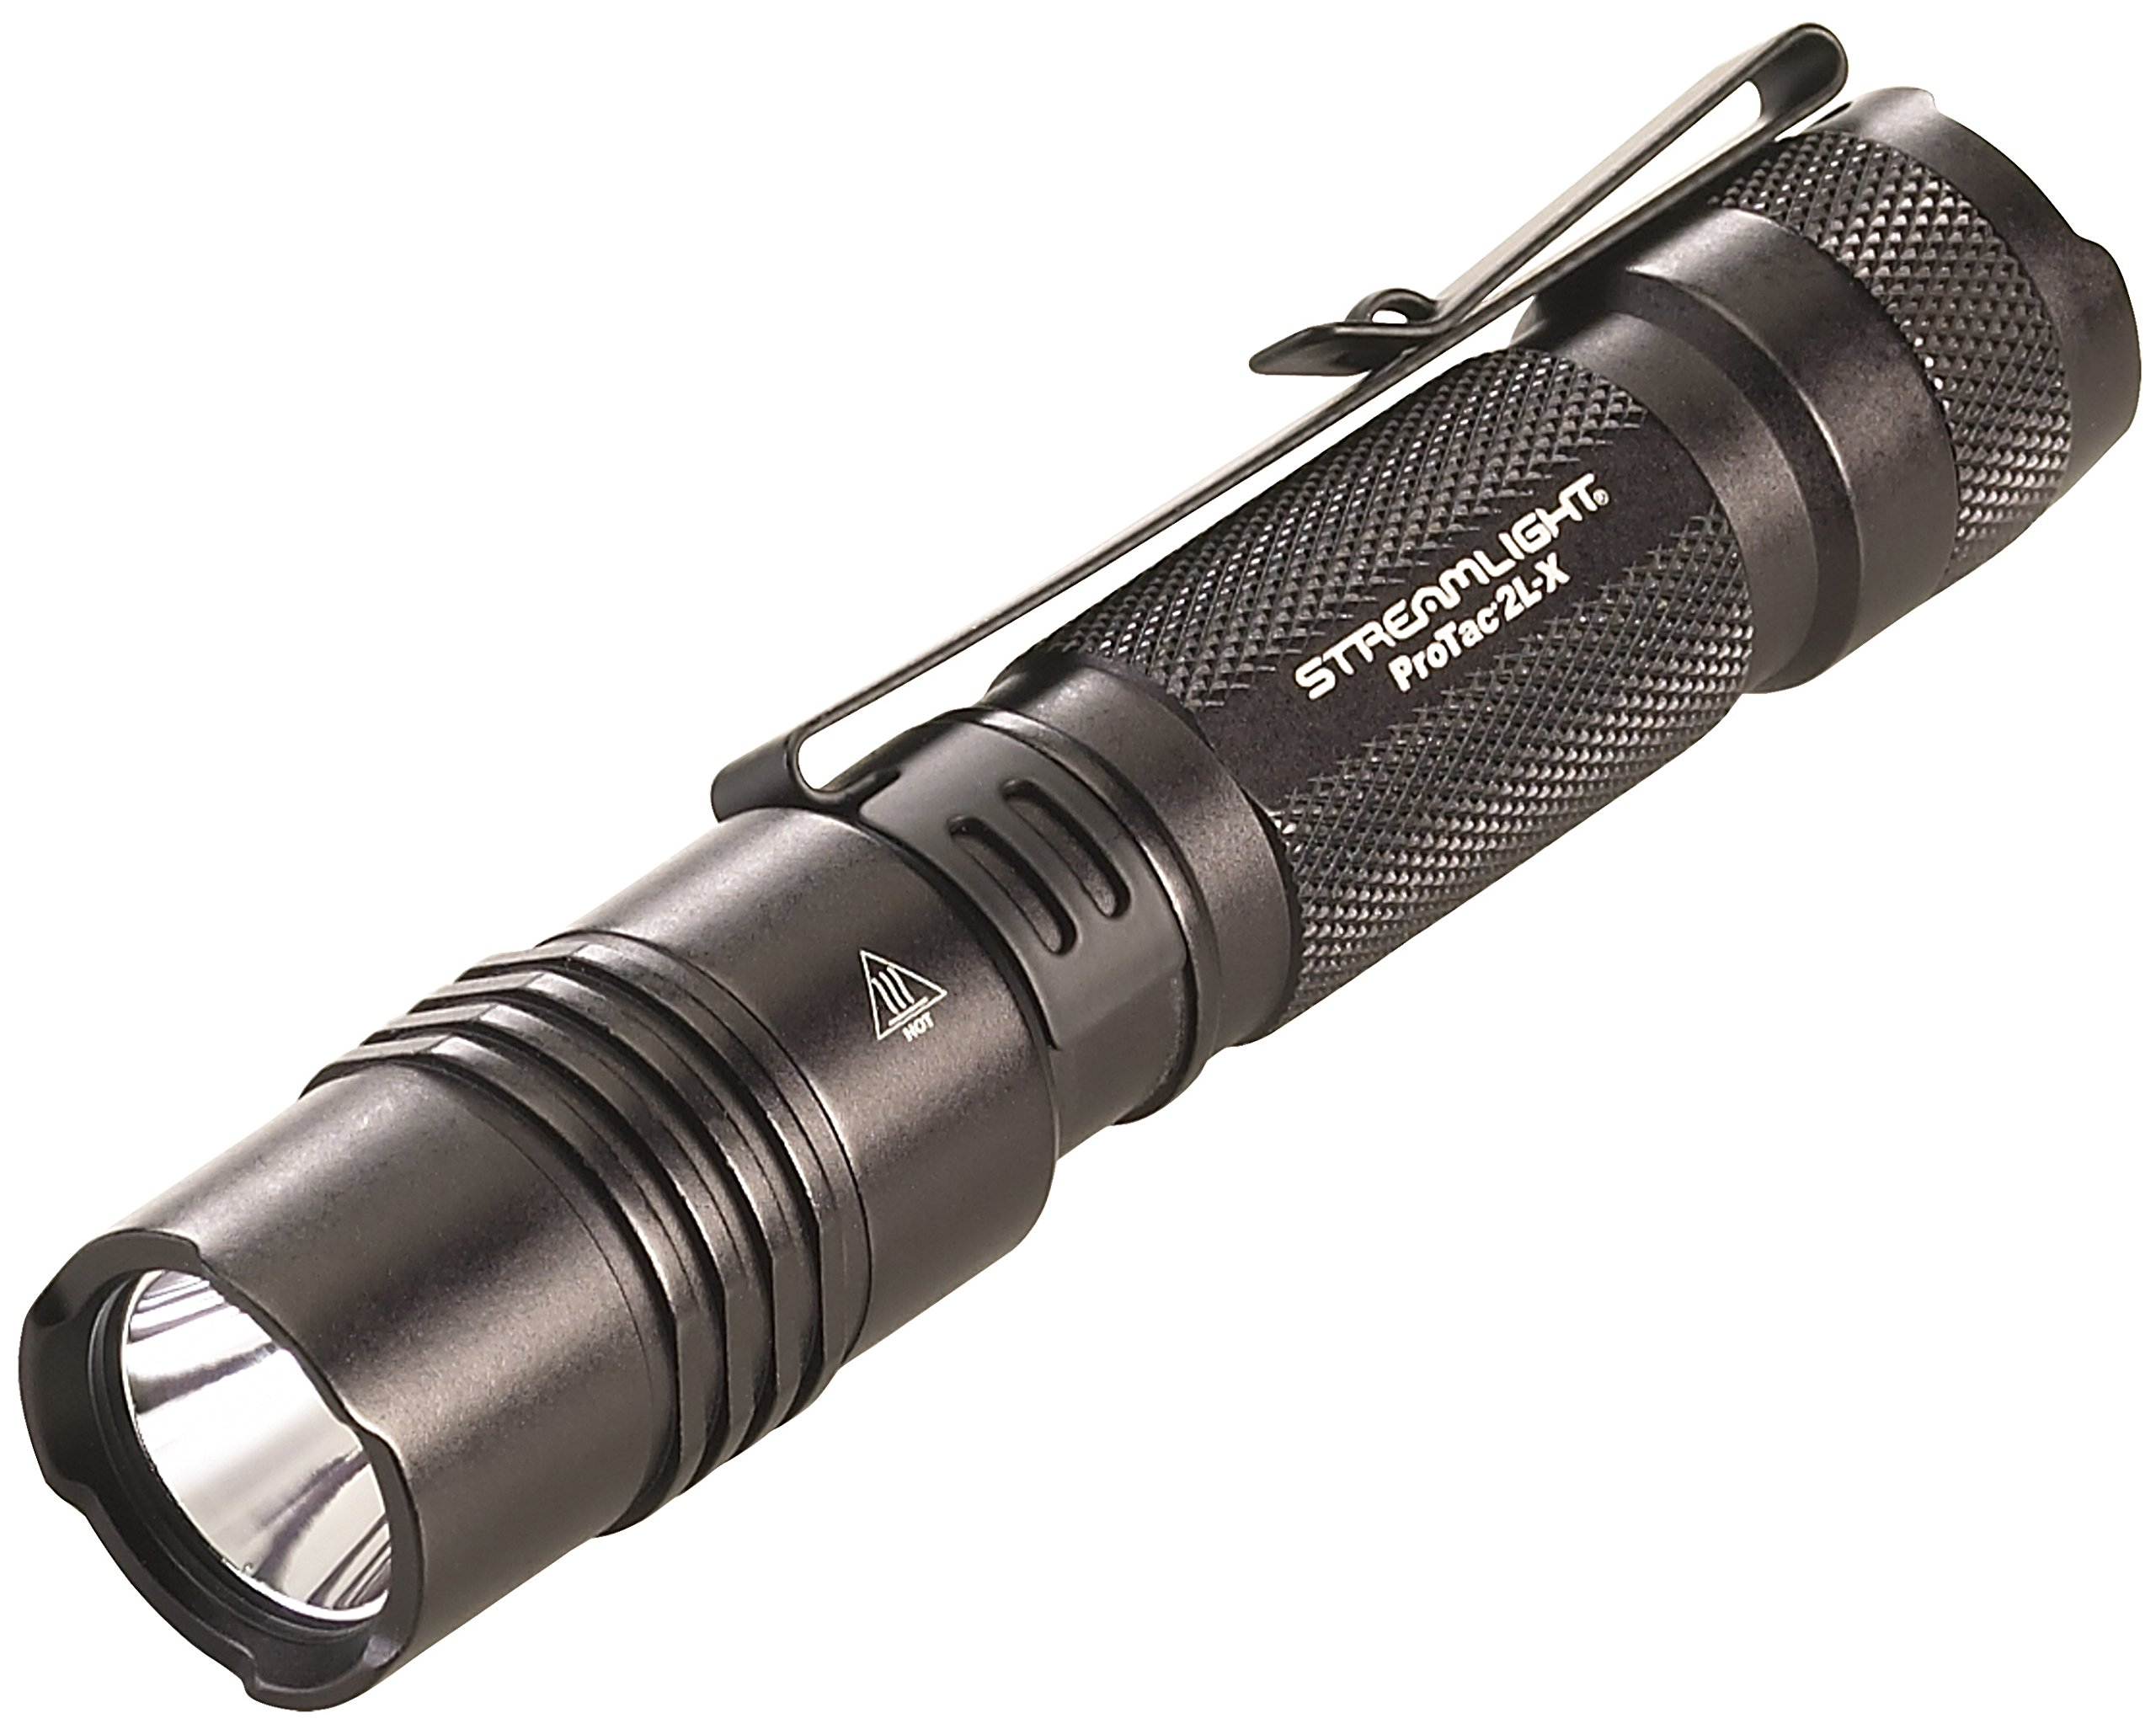 Streamlight 88083 ProTac 2L-X USB, Rechargeable USB battery, USB cord and holster and Box - 500 Lumens by Streamlight